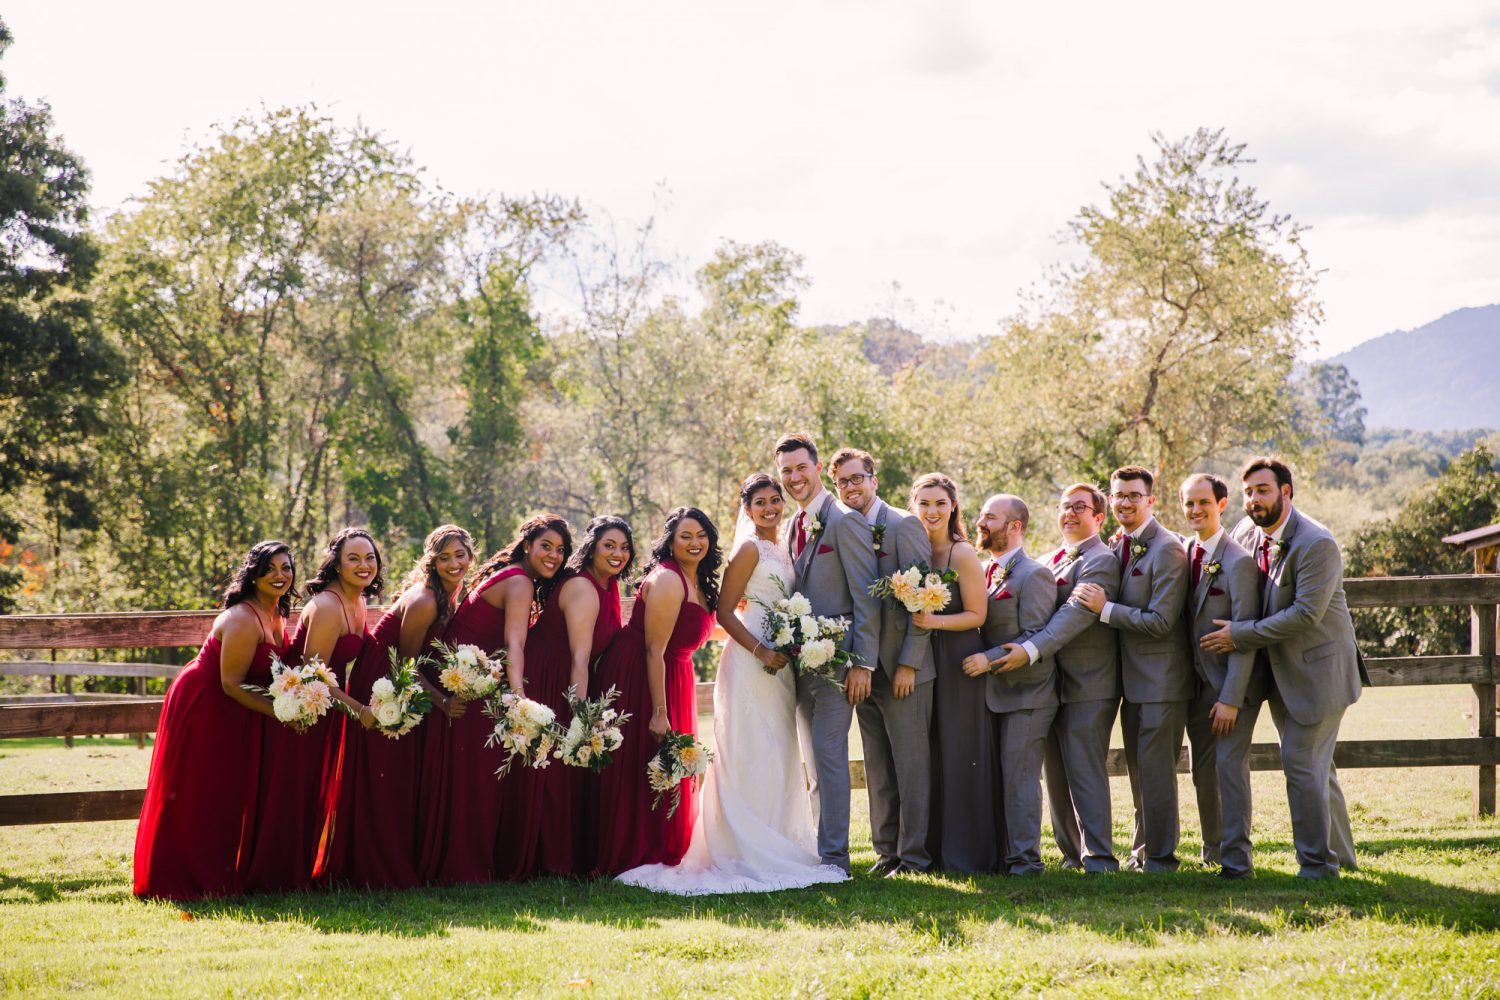 Waynesville NC Wedding Photography | Bridal Party Hugging in